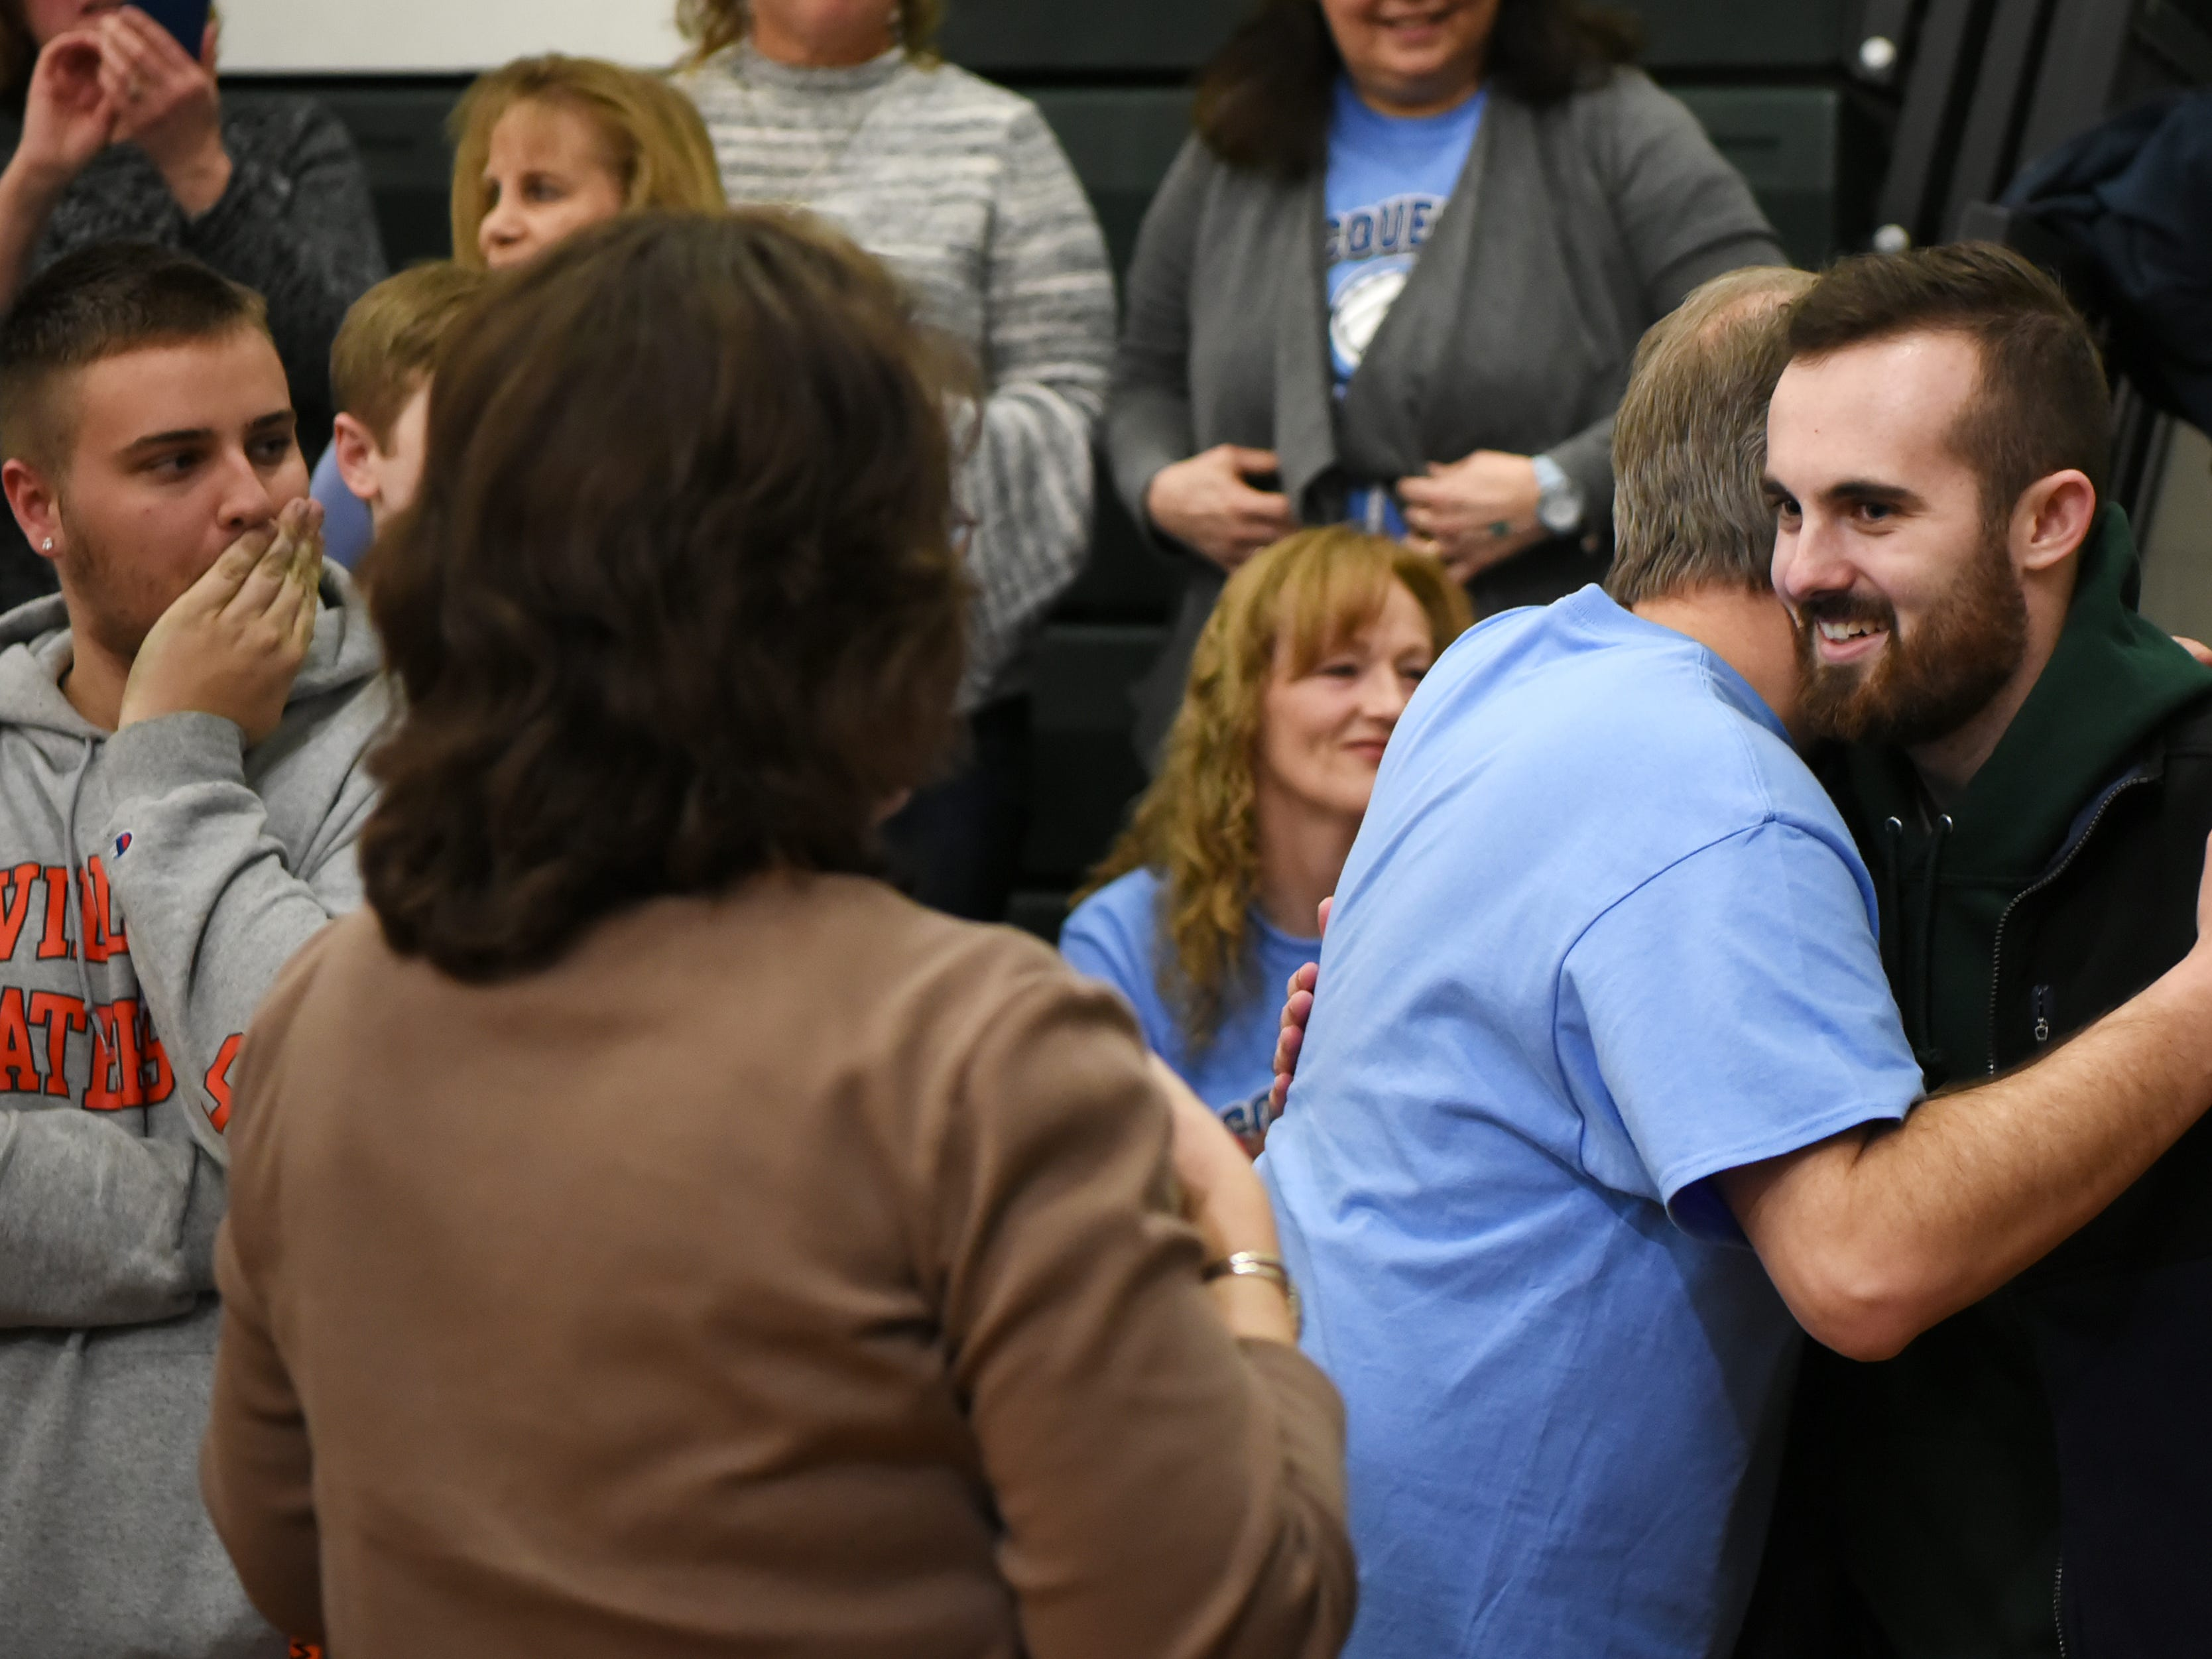 A fundraising Volleyball Tournament is held at Midland Park High School in Midland Park on Saturday February 9, 2019. The event is to raise money for the families of two young people seriously injured in an auto accident in December. Ryan Moore, who was injured in the accident, is greeted by his Father, Eric Moore as he arrives at the gym.